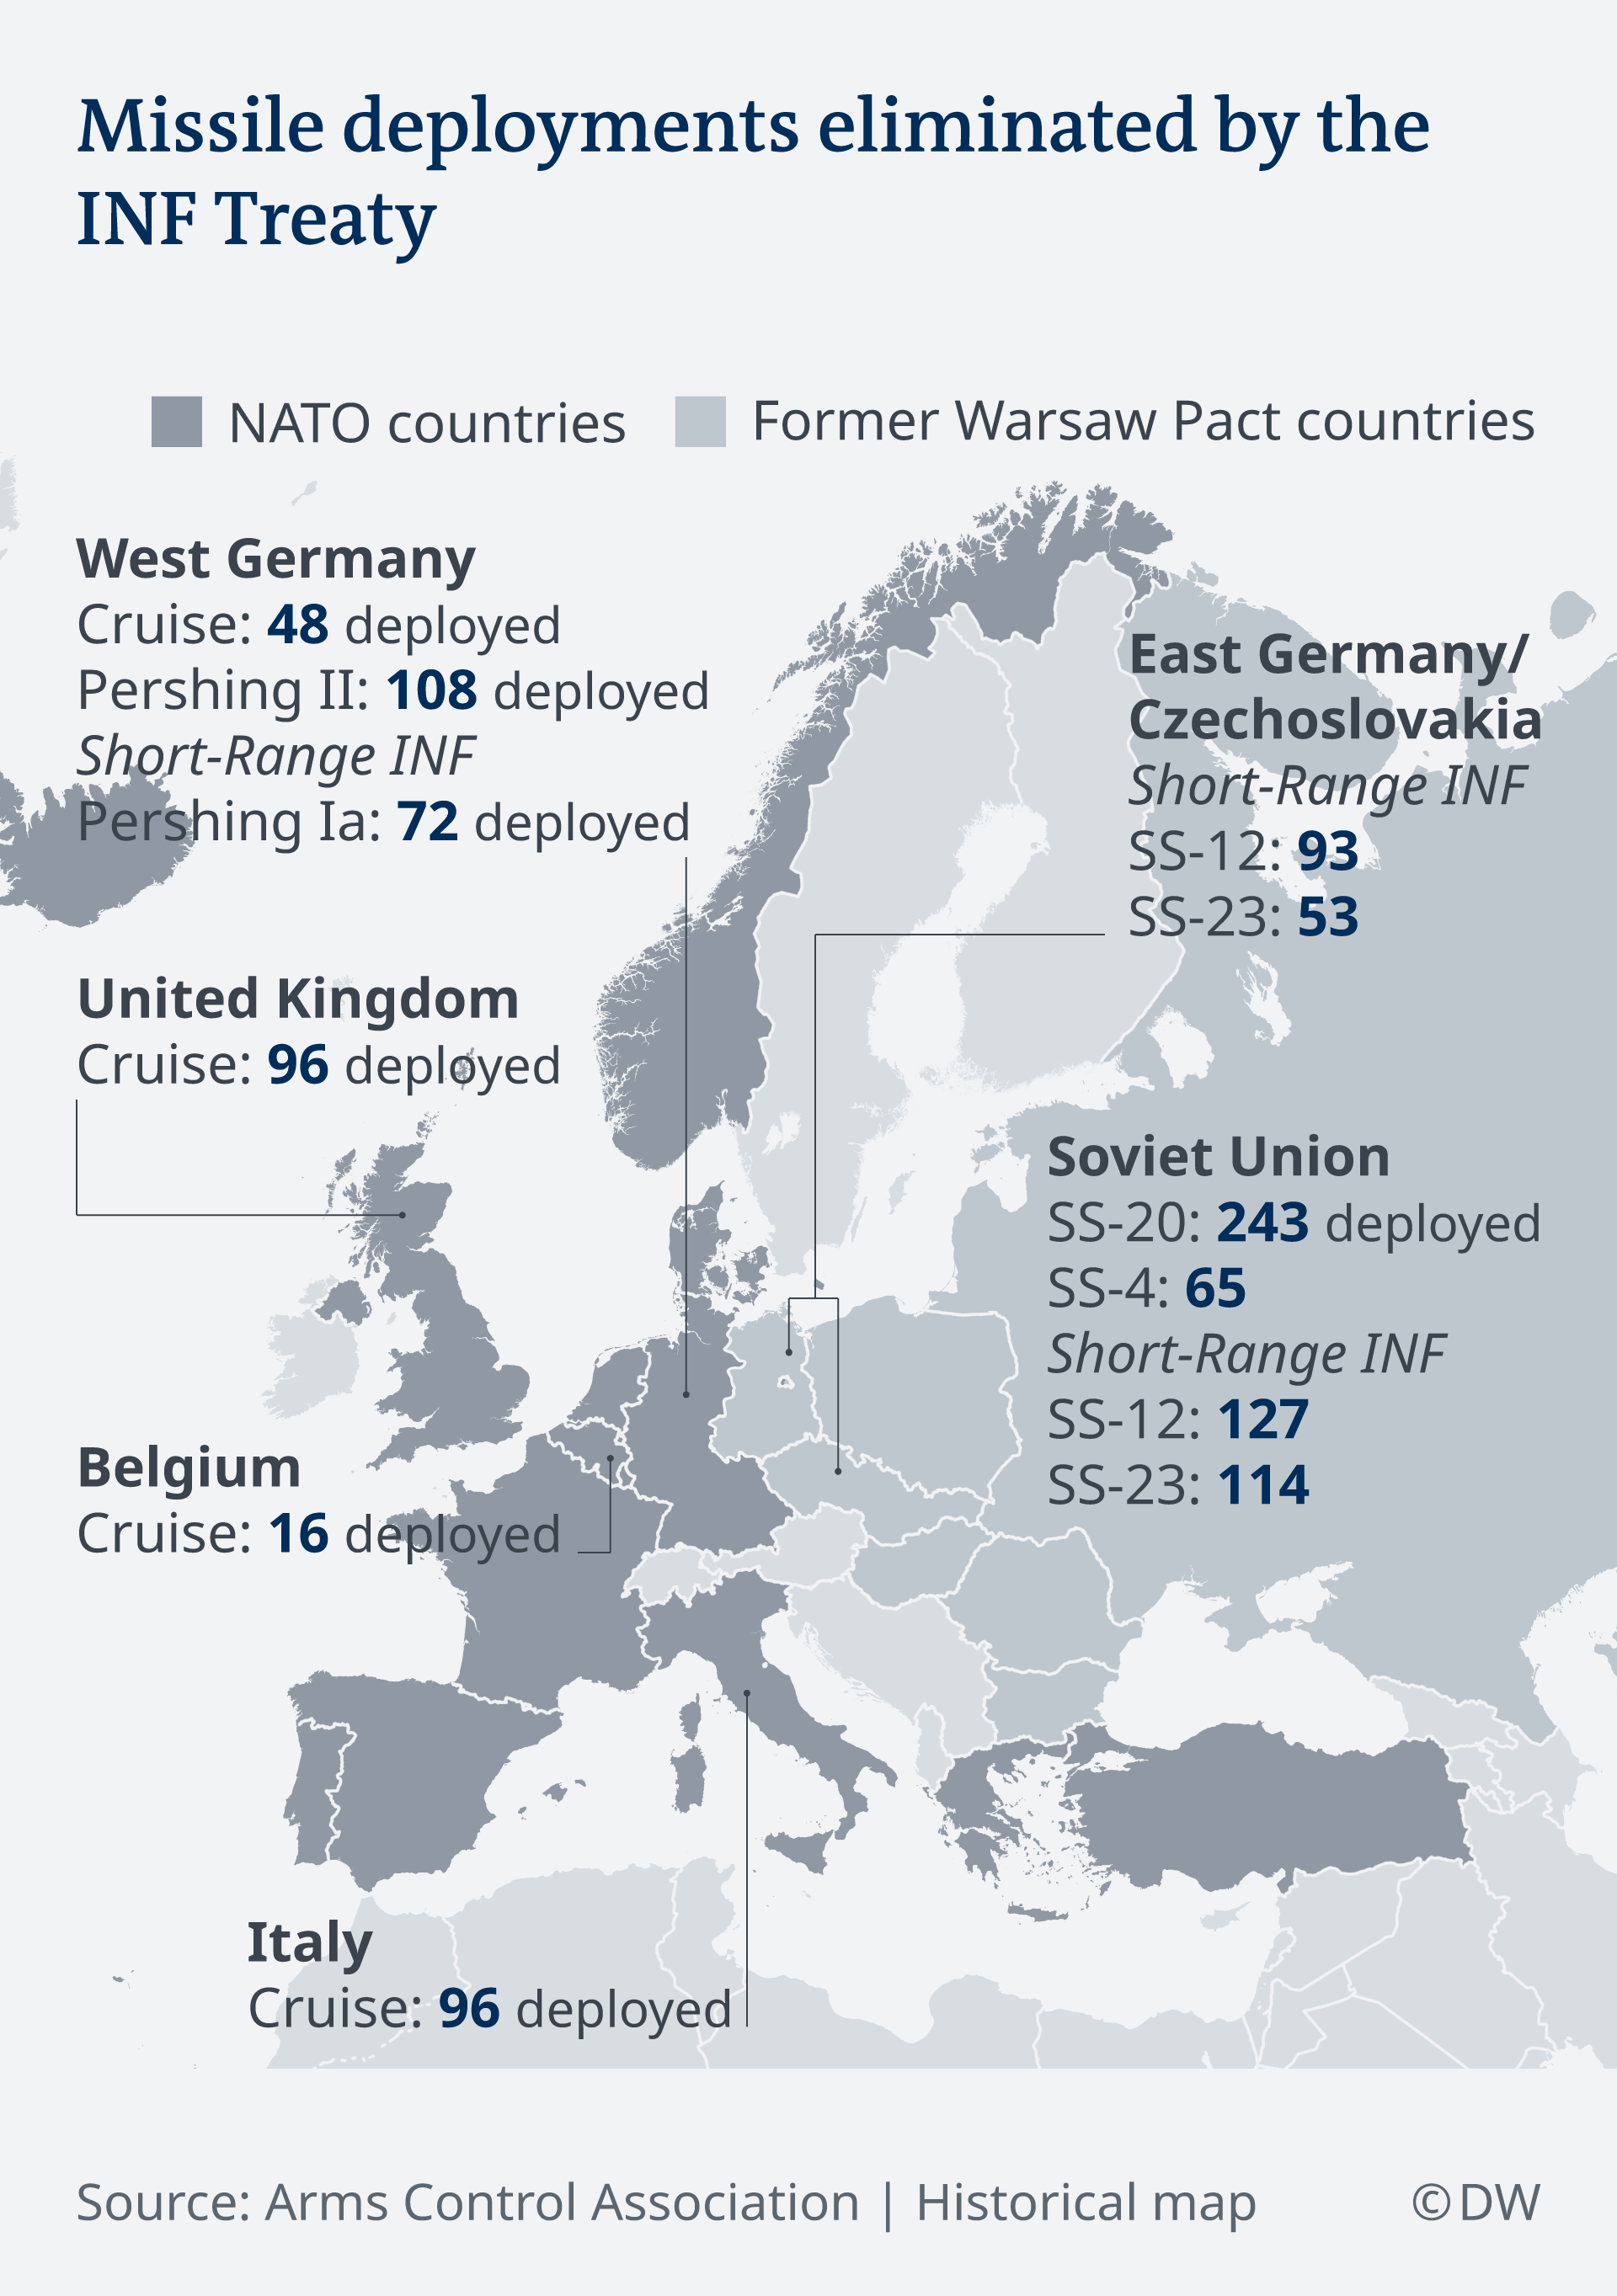 A map showing missile deployments eliminated by the INF treaty